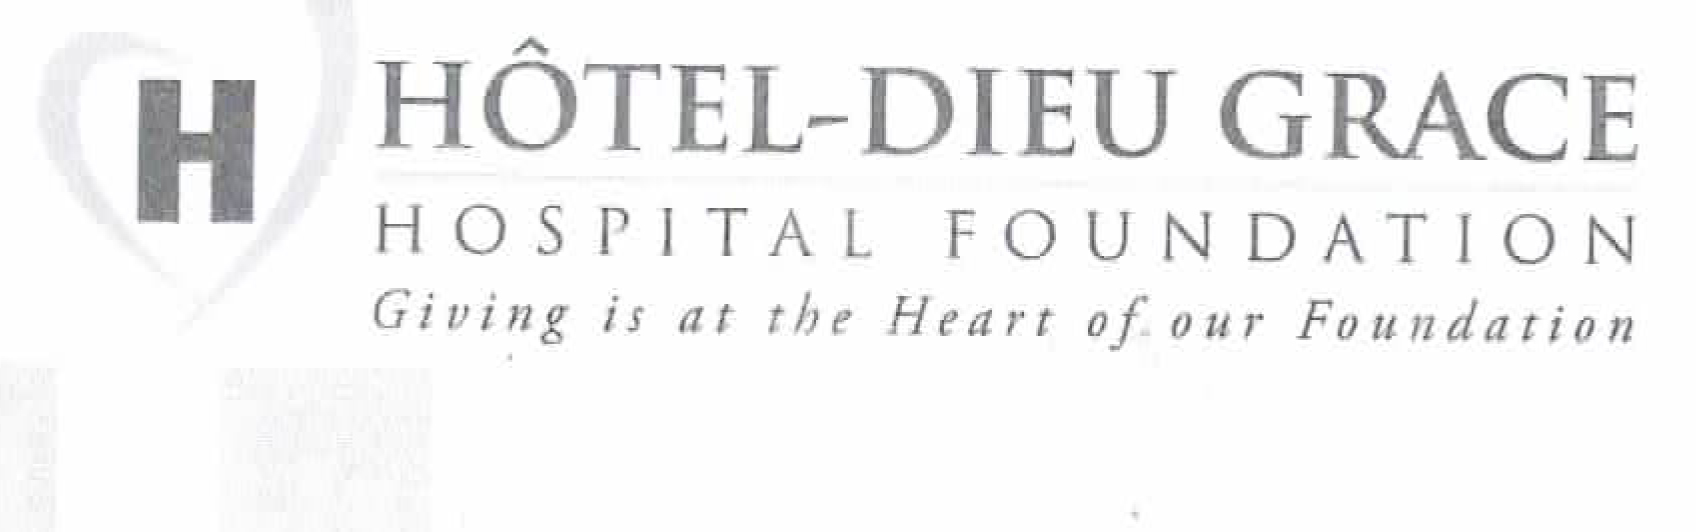 Hotel-Dieu Grace Hospital Foundation Heart & Soul Gala Donation